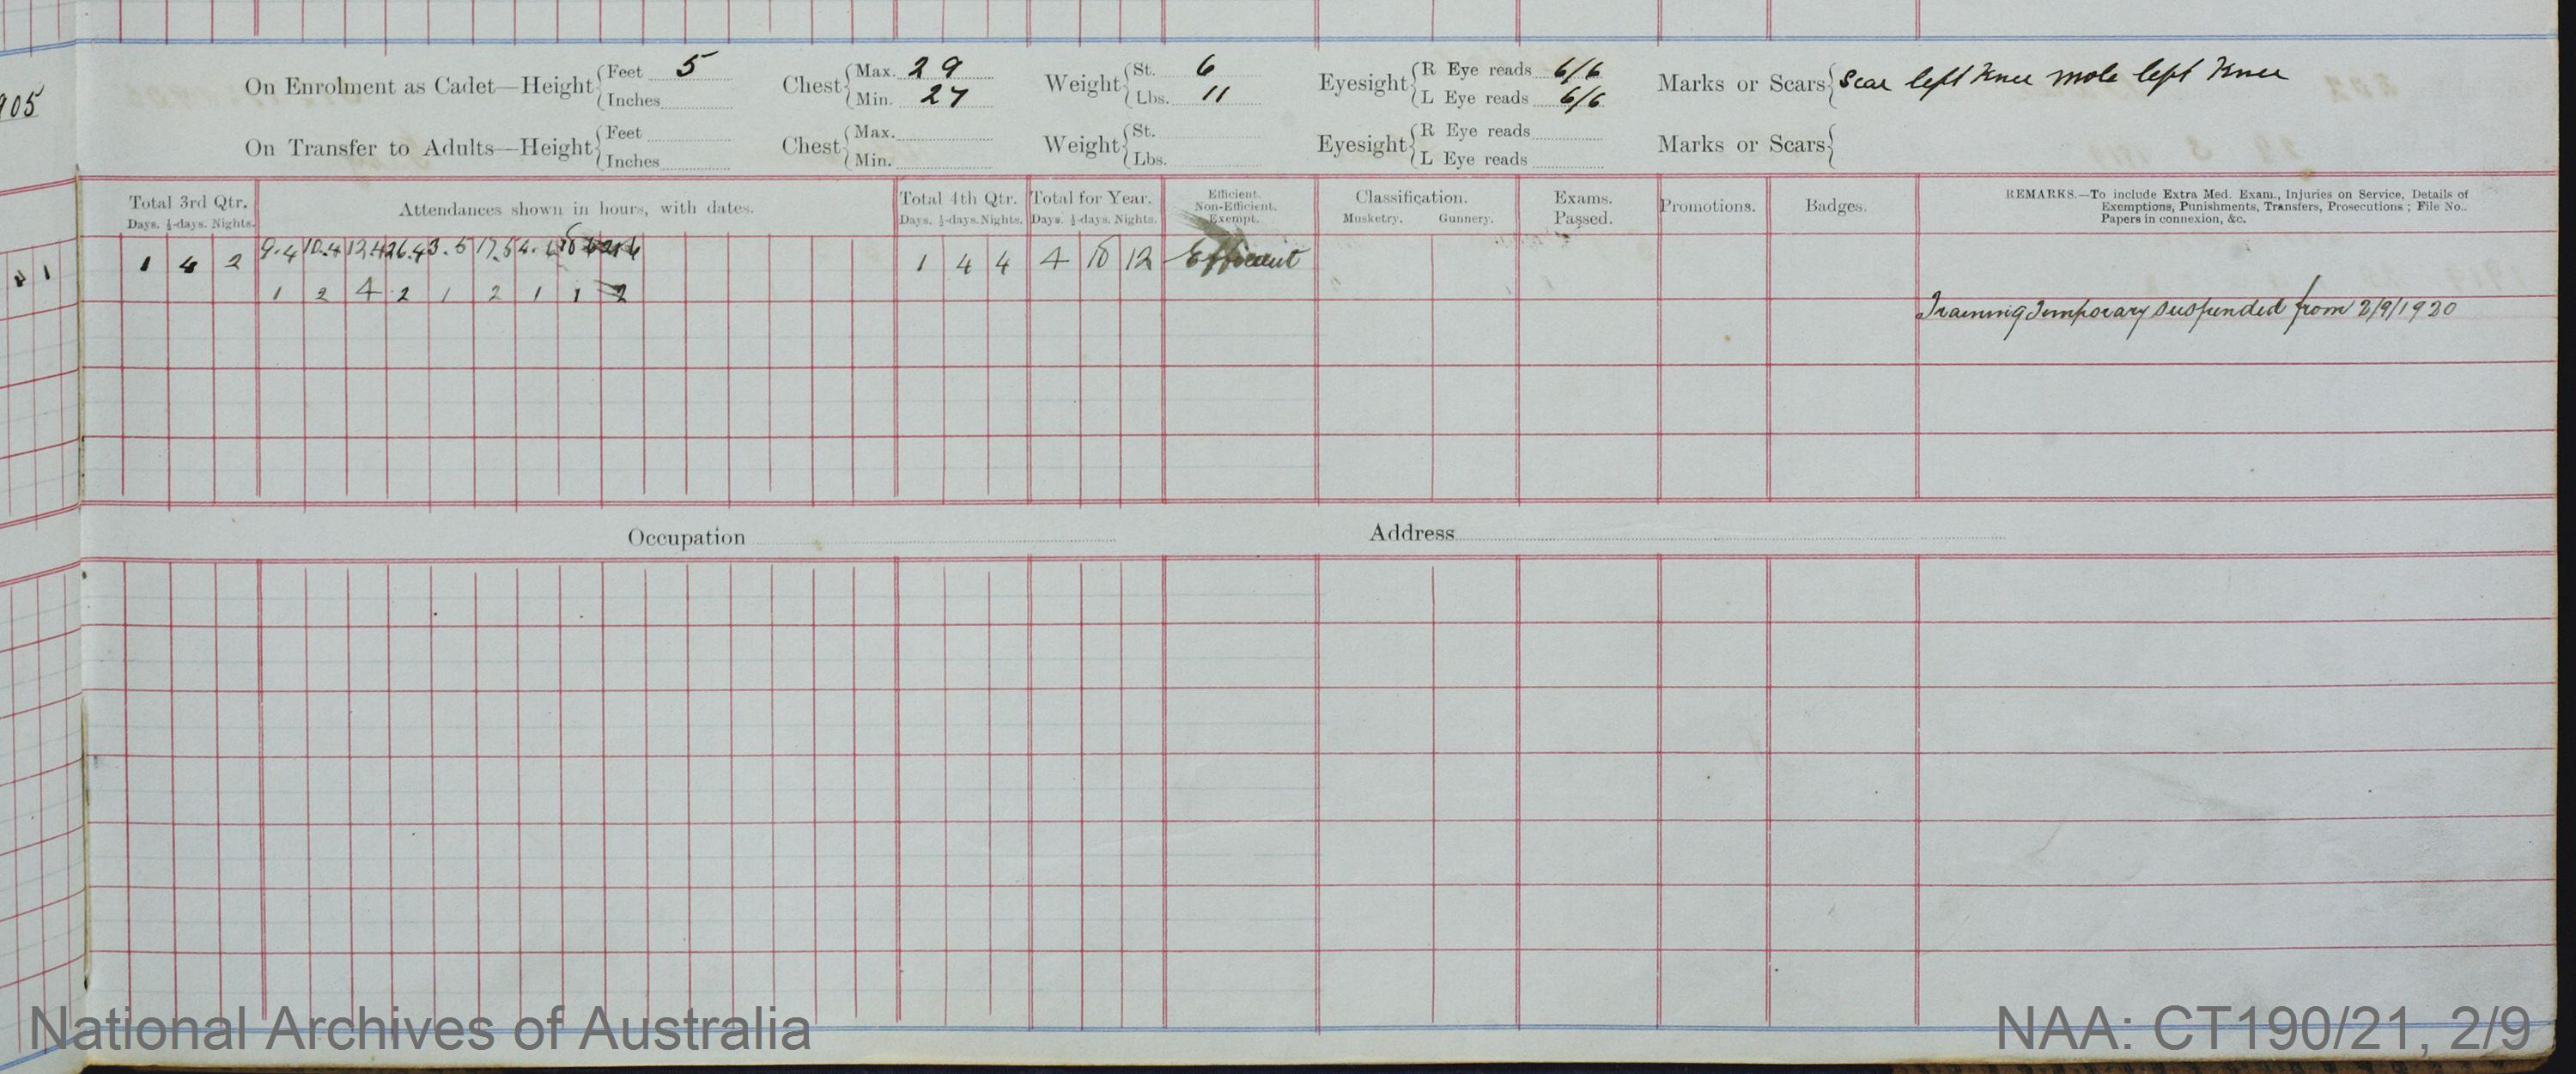 SURNAME - ROBERTS;  GIVEN NAME(S) - Neil Oliver;  OFFICIAL NUMBER - 299;  DATE OF BIRTH - 31 March 1905;  PLACE OF BIRTH - [Unknown];  NEXT OF KIN - [Unknown] ;  SERVICE/STATION - Port Fairy;  REGISTRATION DATE - 29 March 1919